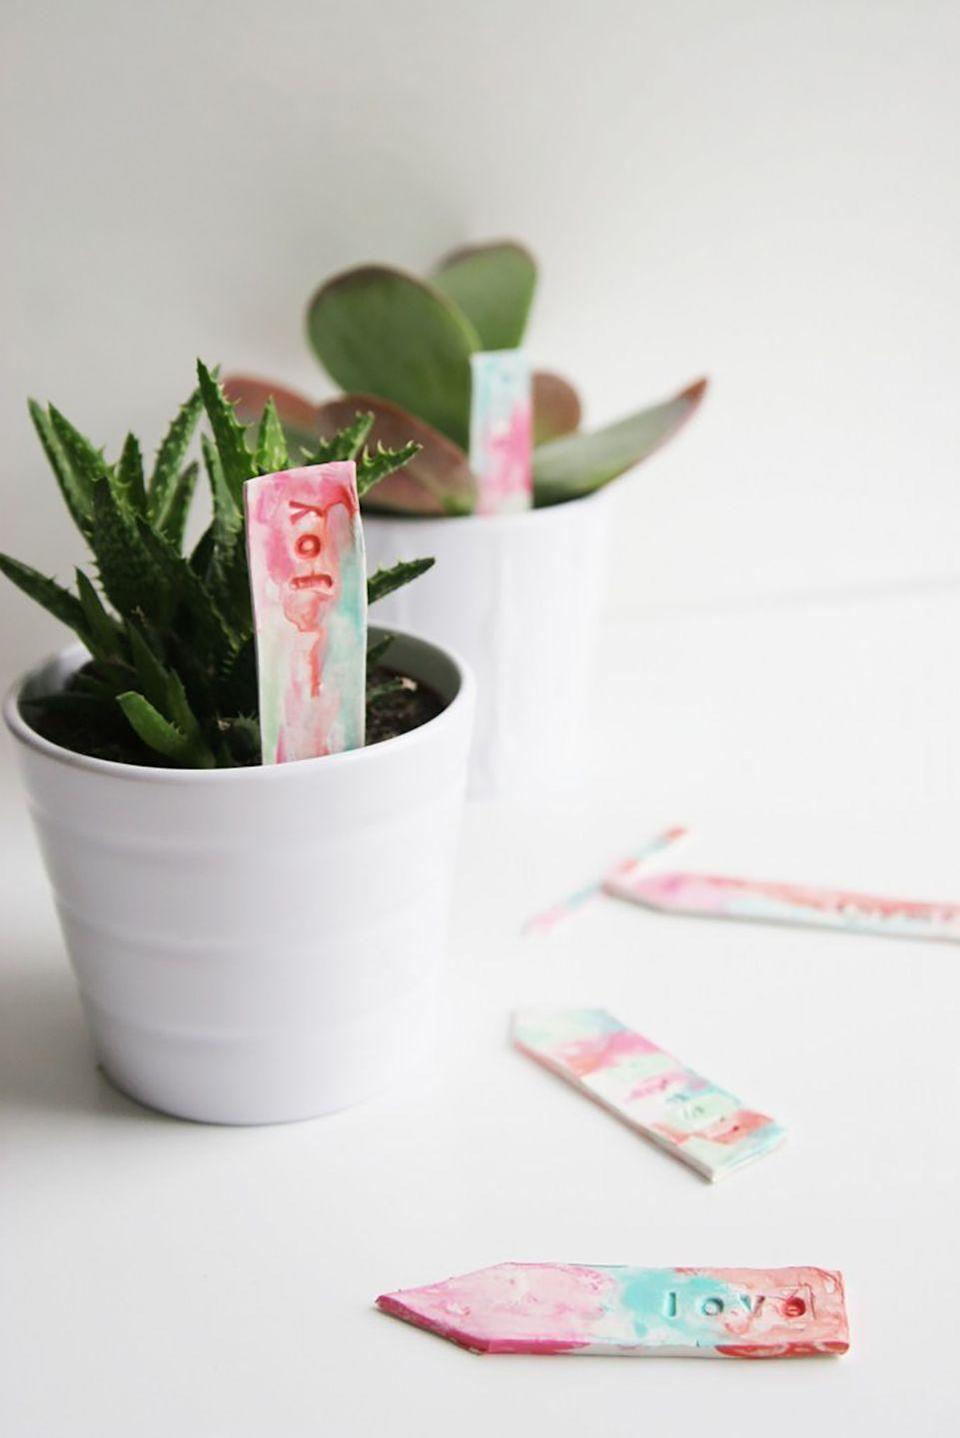 """<p>Acrylic paint, alphabet stamps, and oven-bake polymer clay are all you need to make these pretty plant markers with the kids.</p><p><strong>Get the tutorial at <a href=""""http://www.homemadeginger.com/2016/03/watercolor-plant-markers.html"""" rel=""""nofollow noopener"""" target=""""_blank"""" data-ylk=""""slk:Homemade Ginger"""" class=""""link rapid-noclick-resp"""">Homemade Ginger</a>. </strong></p>"""